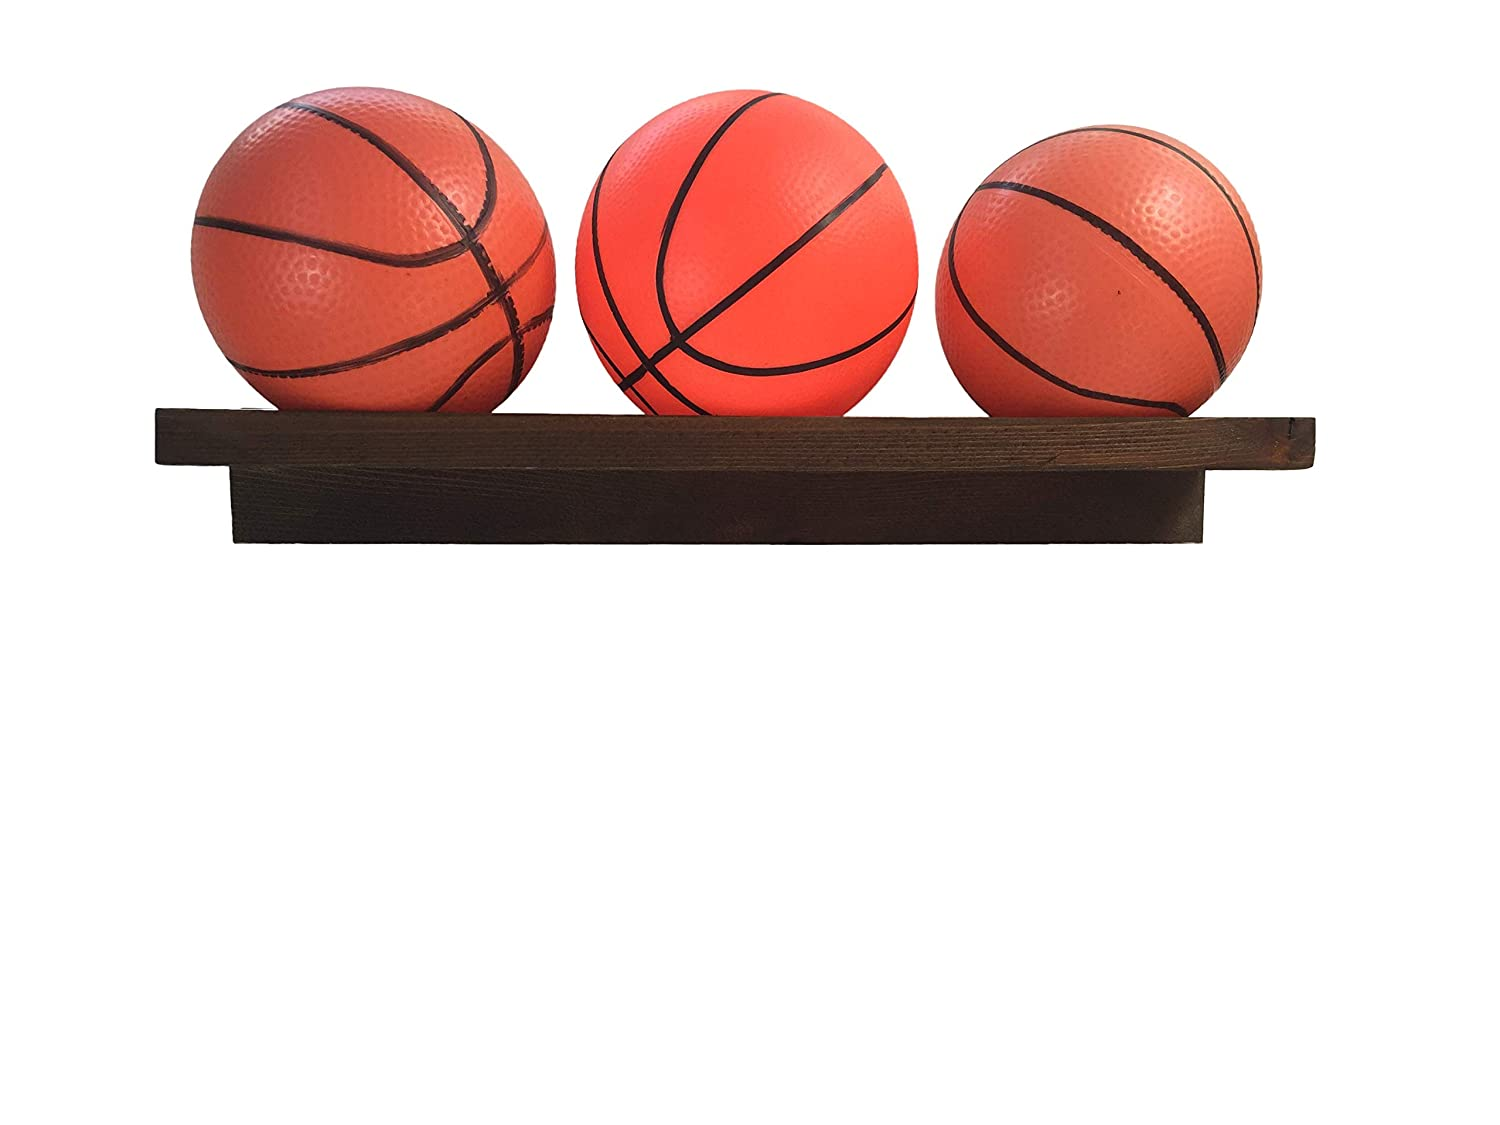 Mini Basketball Holder, Wall Mounted Wooden Mini Basketball Holder Display Wall Mounted Wooden Mini Basketball Holder Display (Dark Cedar) Planter Pro' s